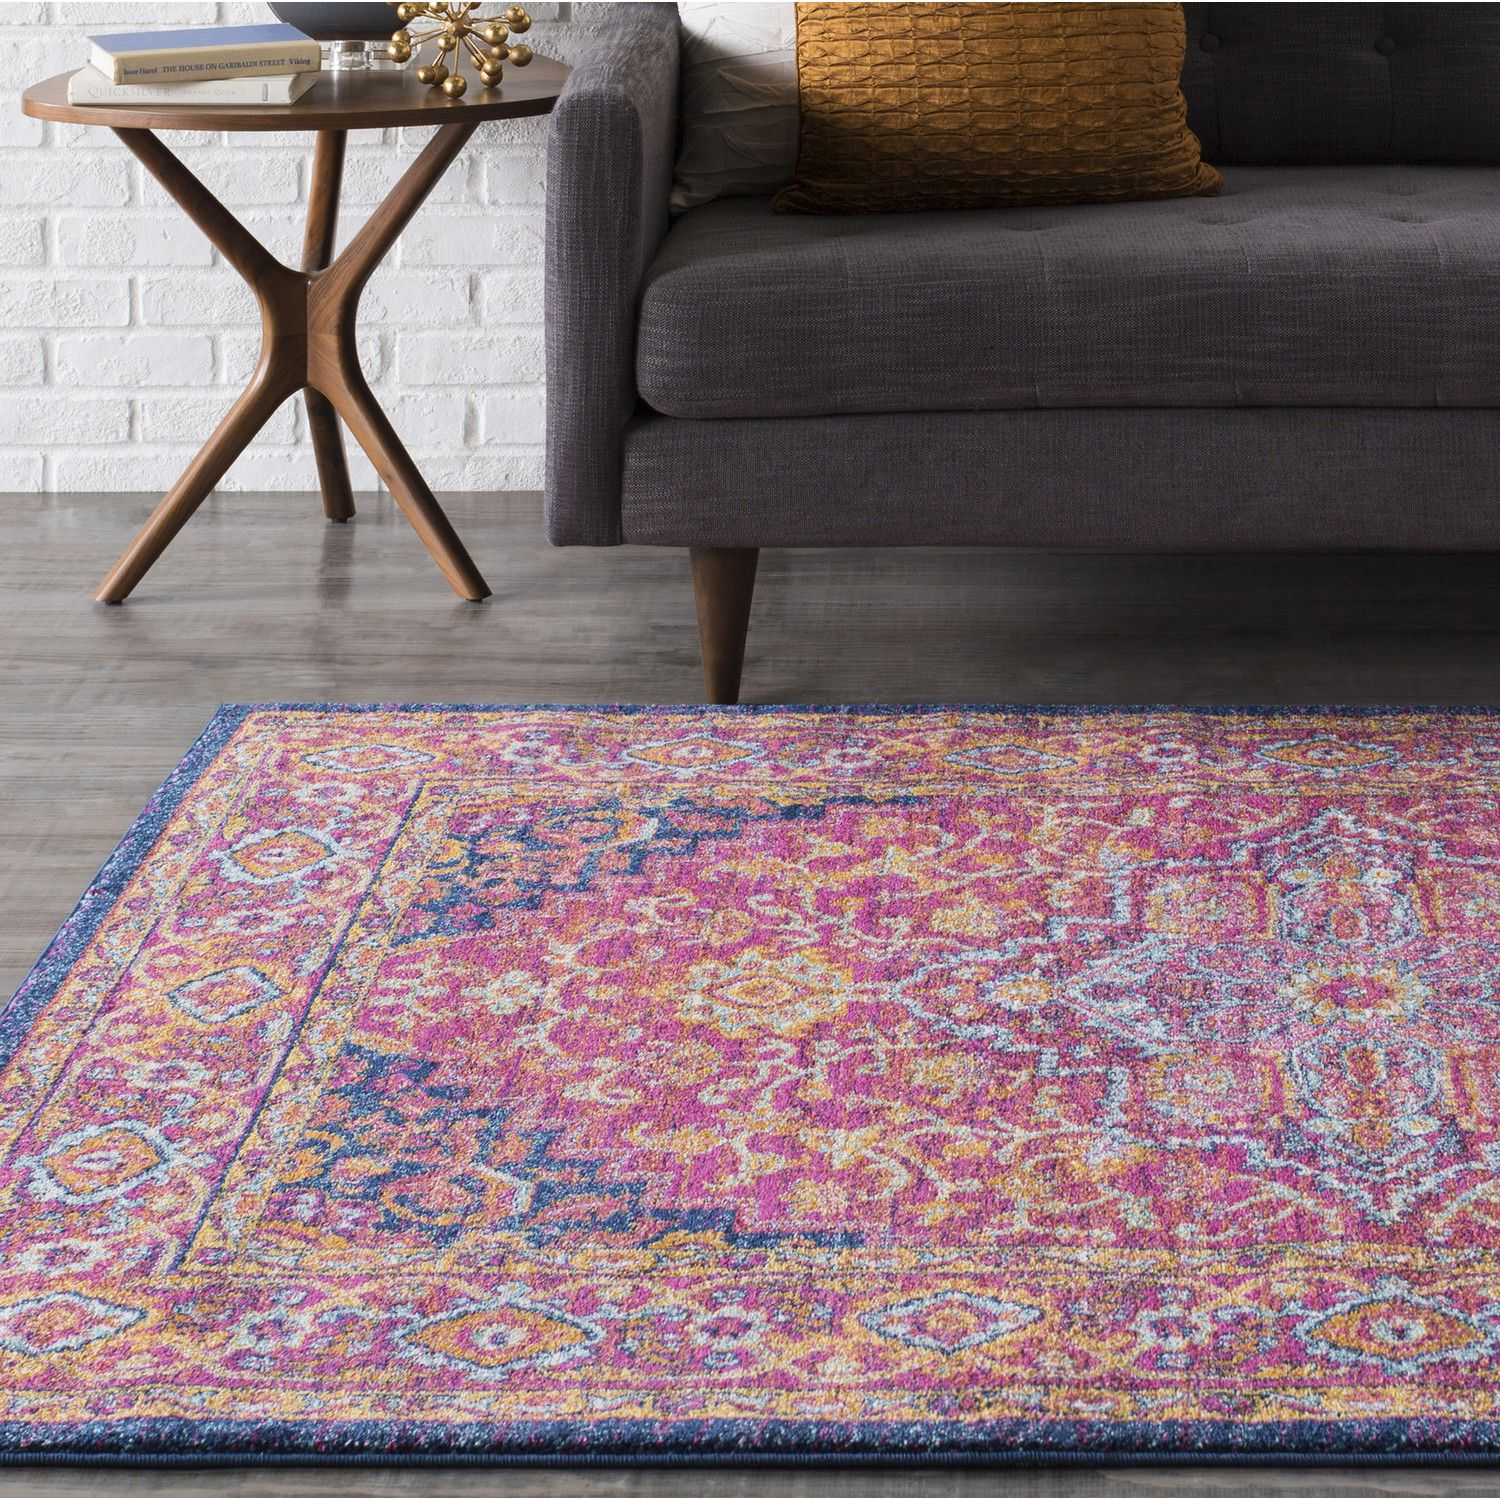 BNGL7557 | Area rugs, Rugs, Stylish rugs